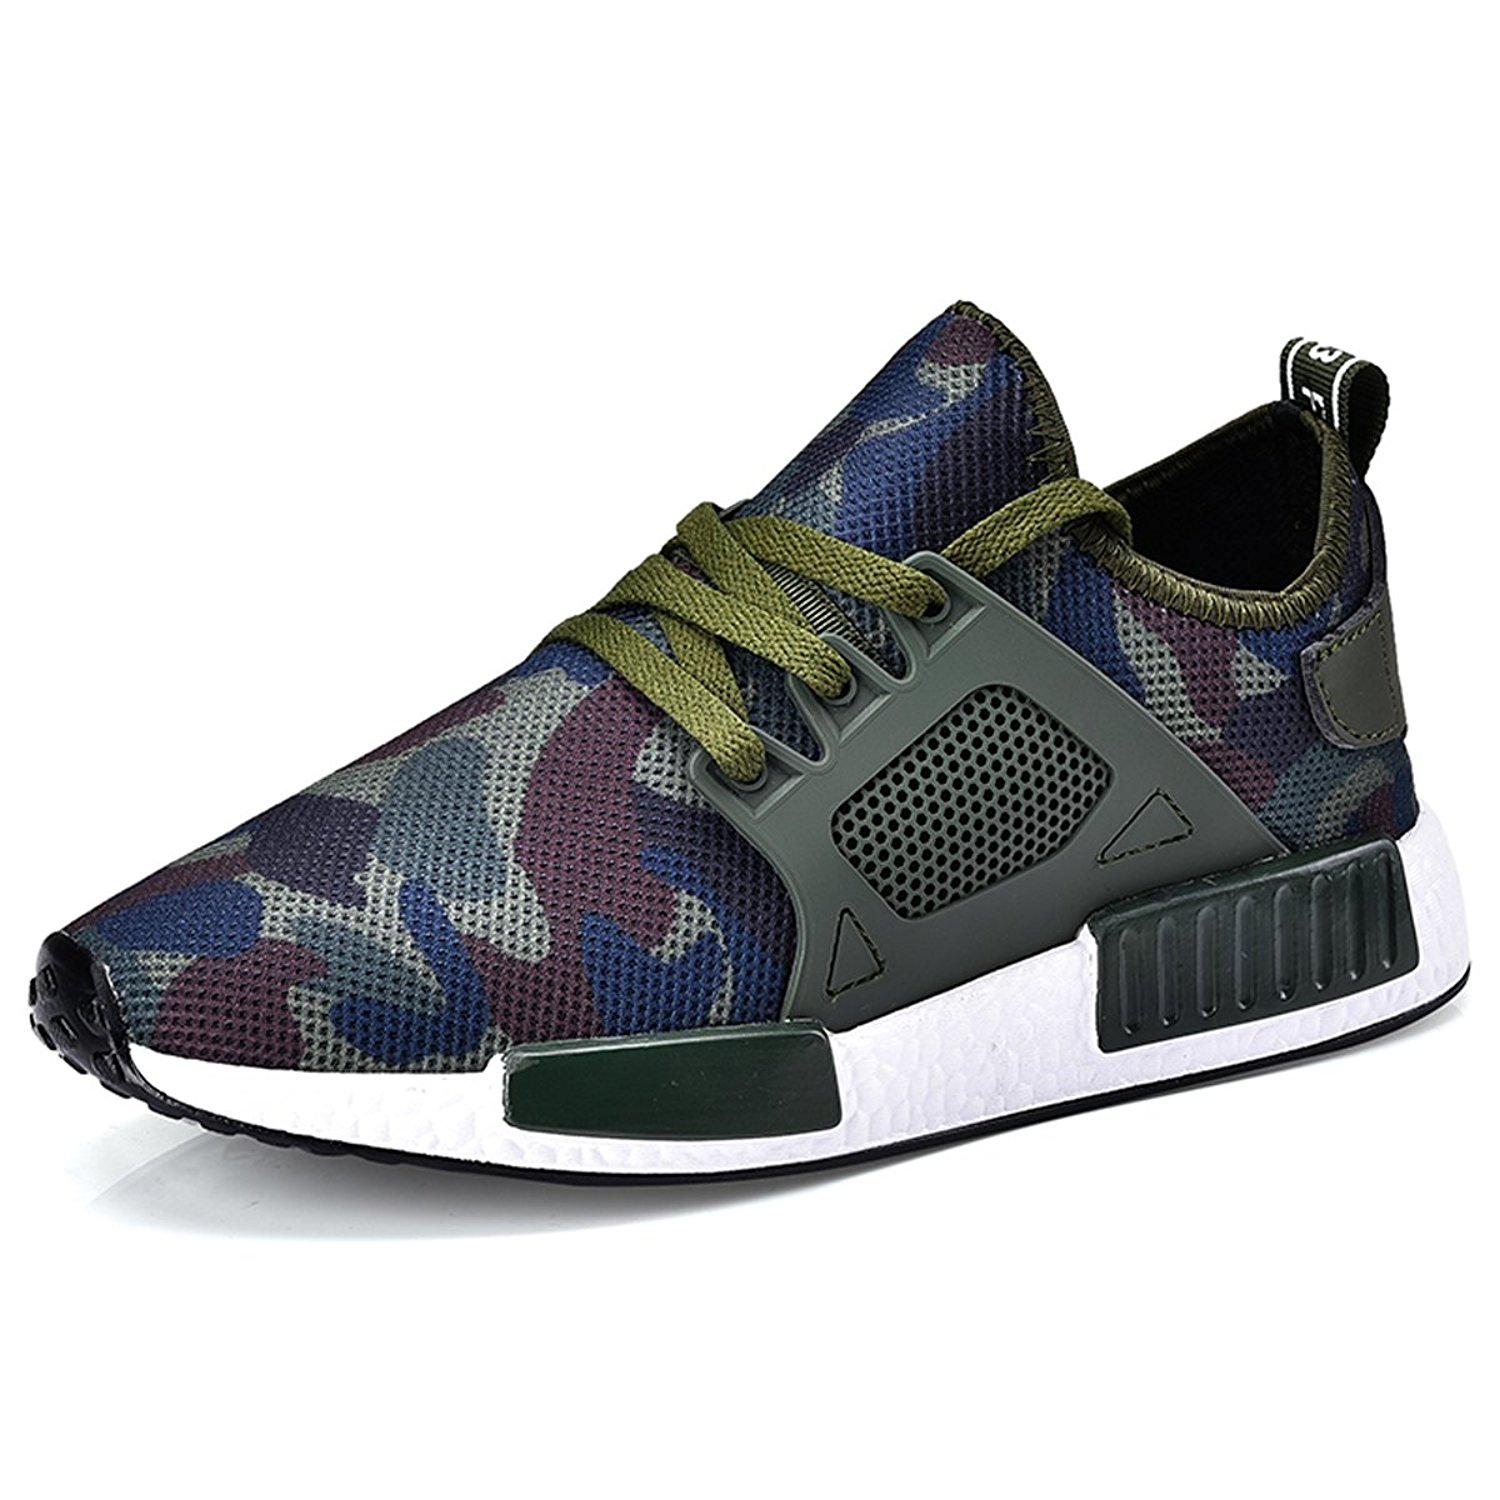 ef112ed48f64 Get Quotations · BADIER Mens Socks Shoes Running Shoes Fashion Mesh Shoes  Casual Fly Weave Sneakers Lightweight Breathable Quick